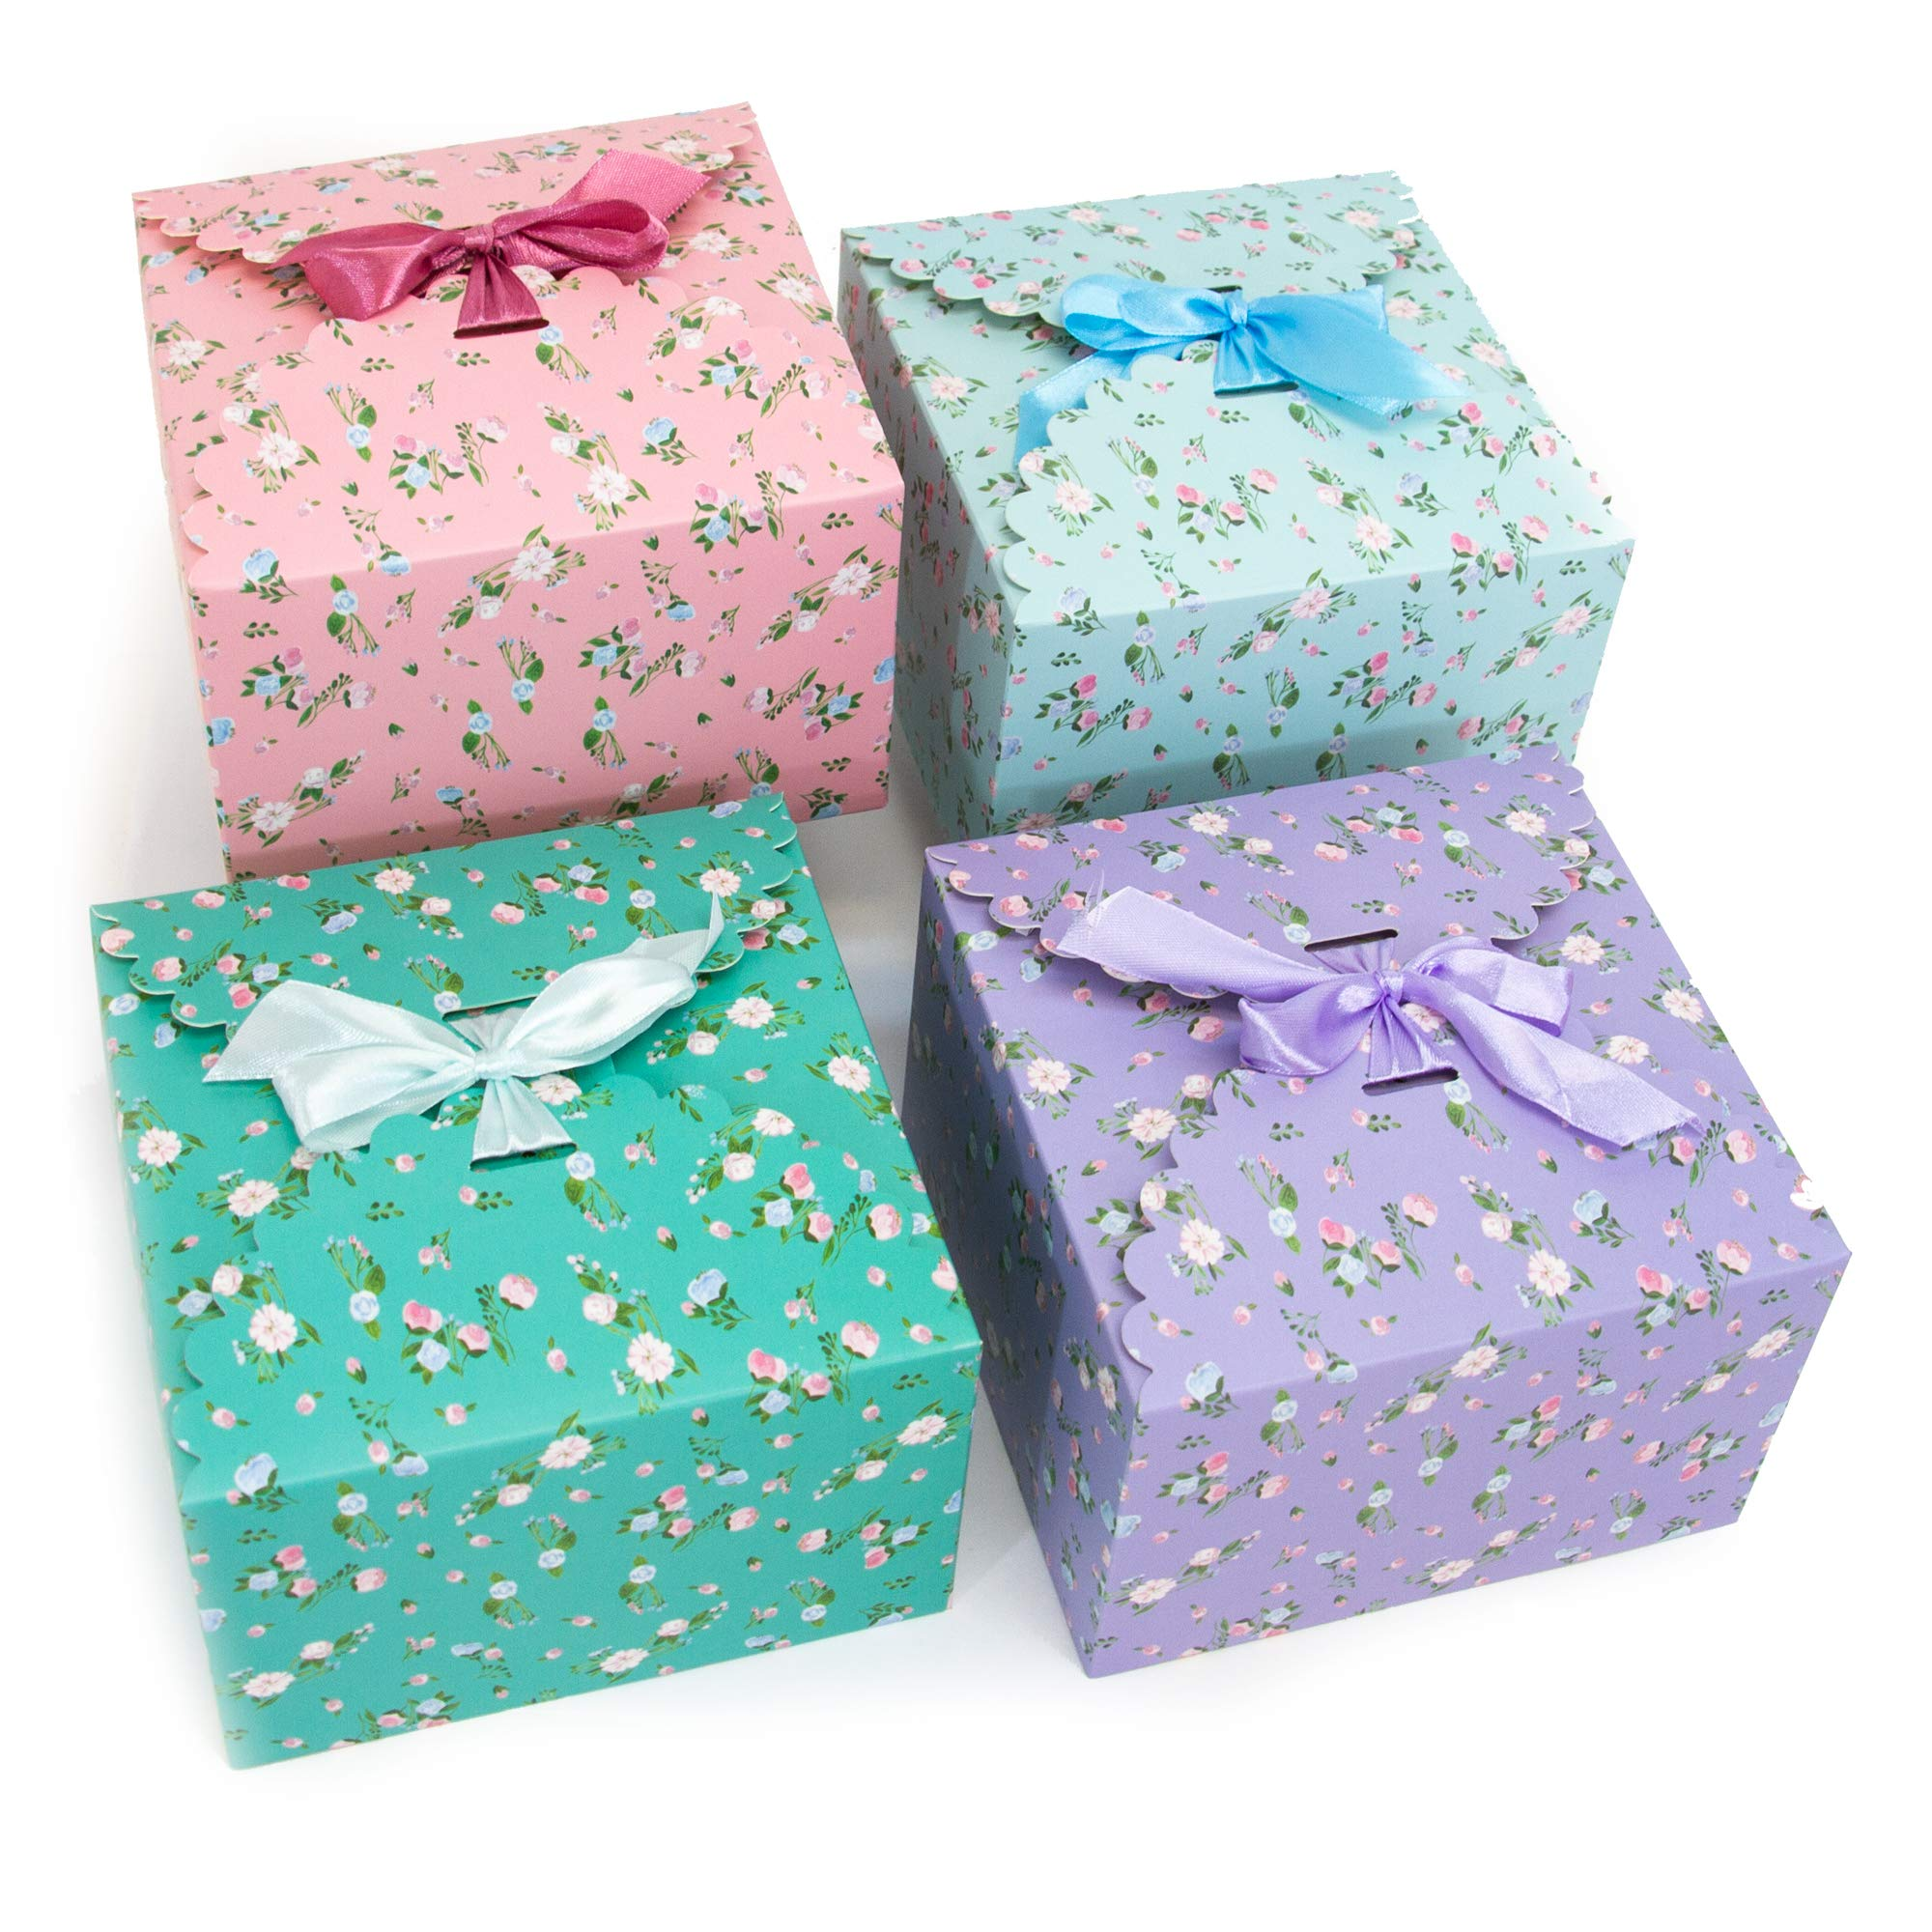 """Gift Expressions Gift Boxes with Lids, Assorted Floral, 12 Pack, 5.8"""" x 5.8"""" x 3.7"""" Foldable Decorative Box, Cupcake Boxes, Party Favors, Bridesmaid Gifts, Thick 400GSM Small Cardboard Boxes"""